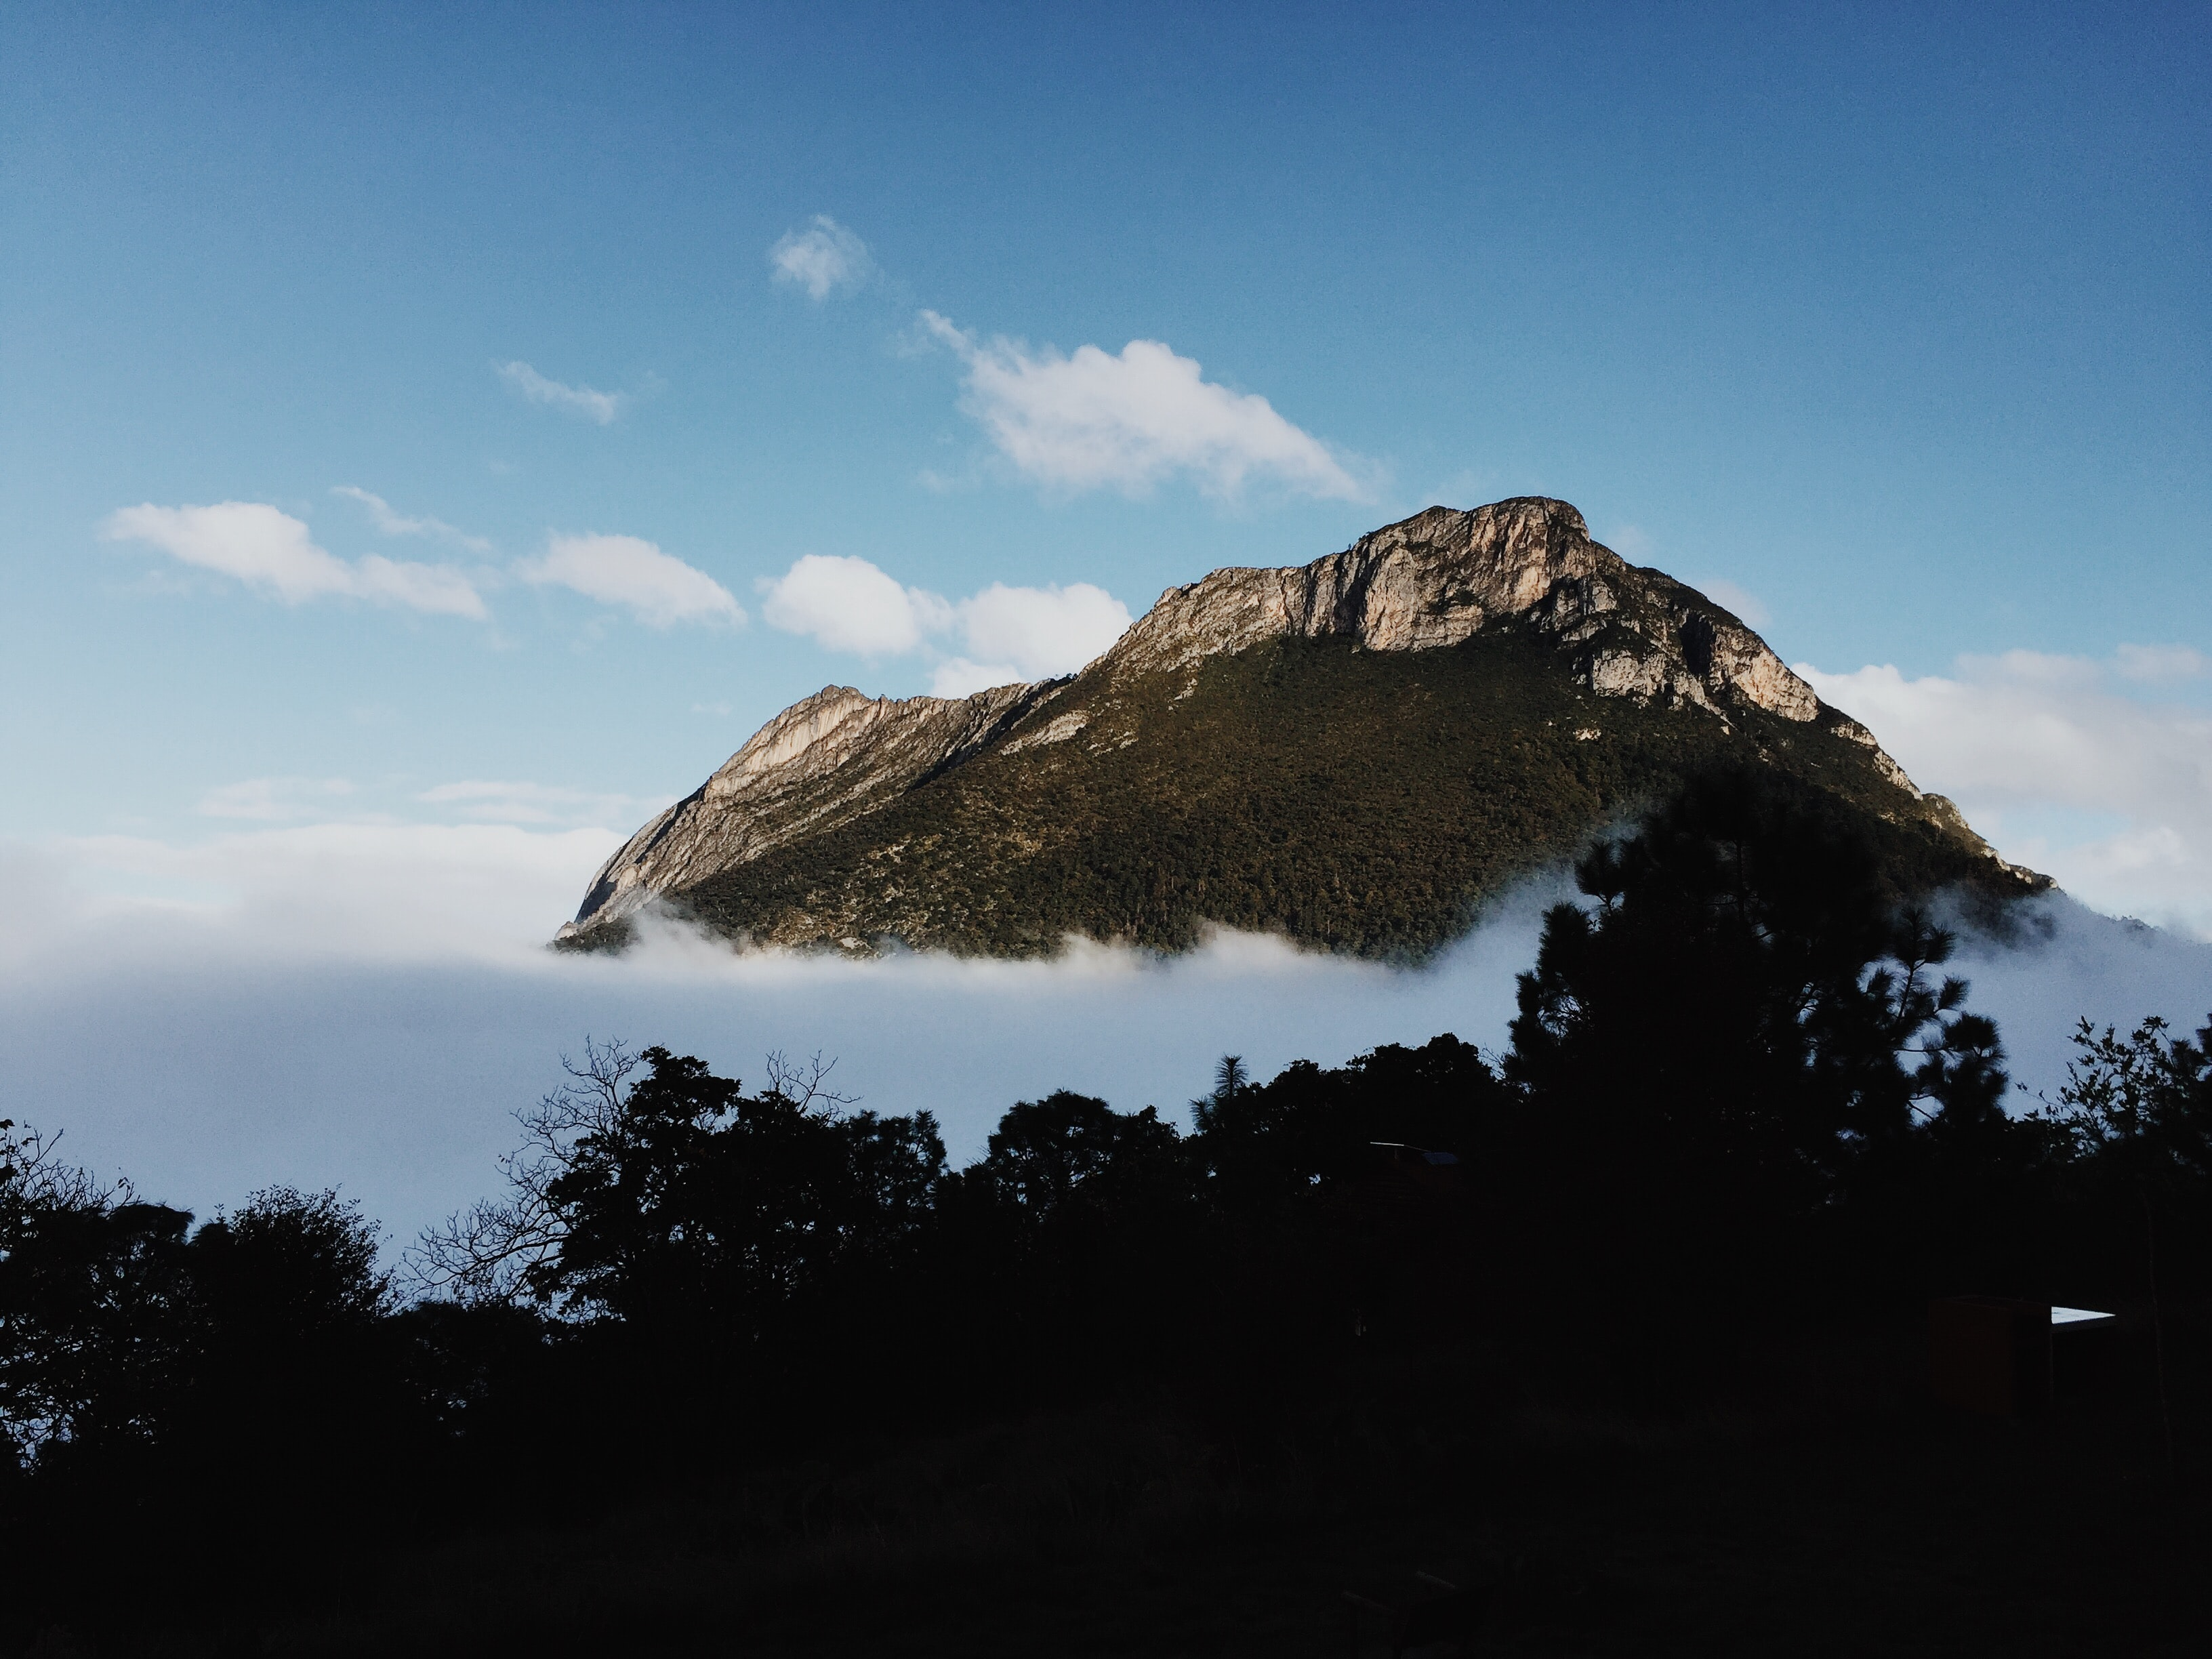 A rocky mountaintop emerging from a thick layer of fog at the foot of the mountain